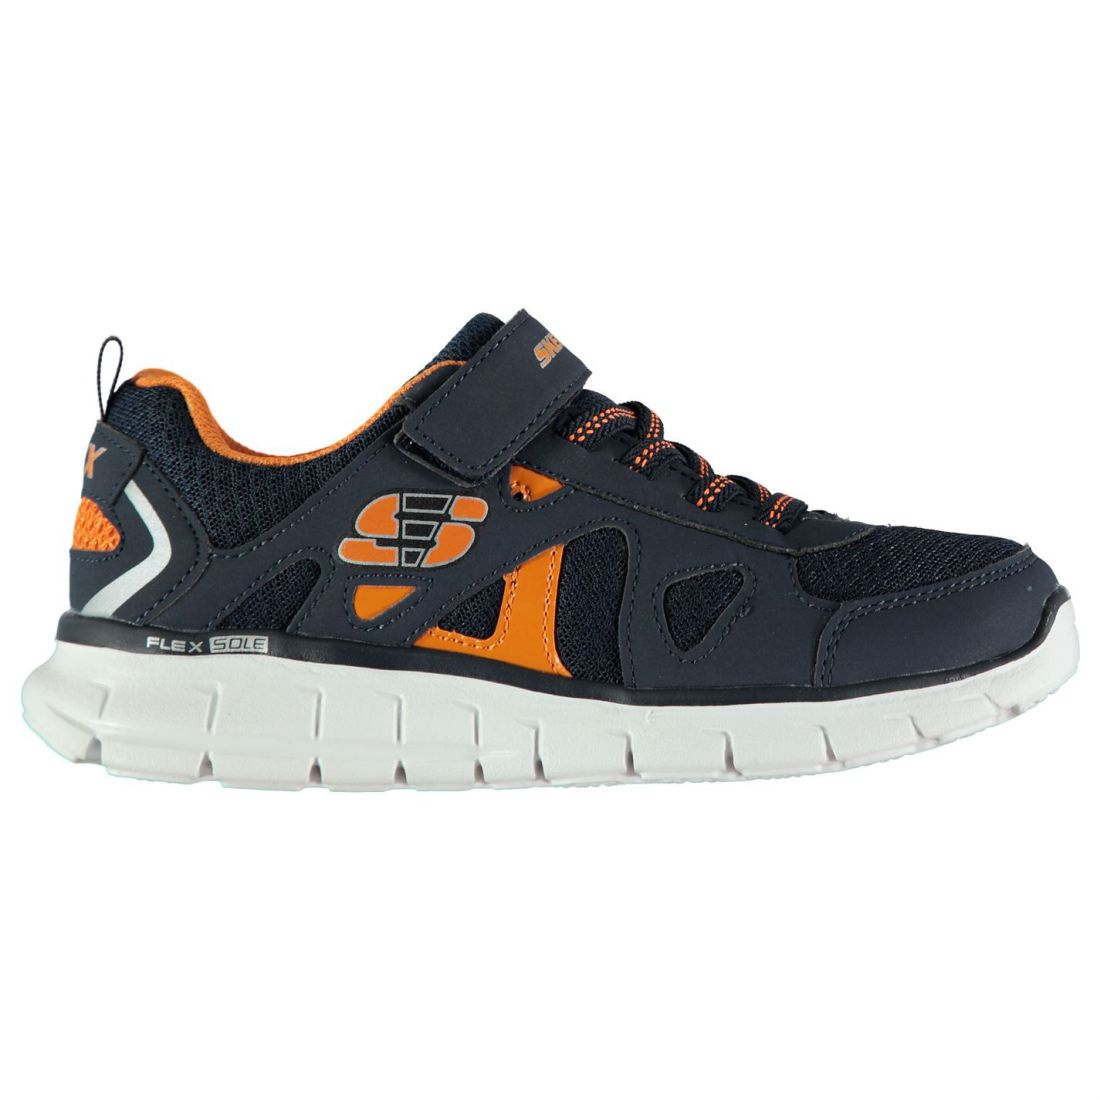 9589eeac536b Skechers Kids Boys Vim Speed Trainers Child Runners Elasticated Laces  Breathable